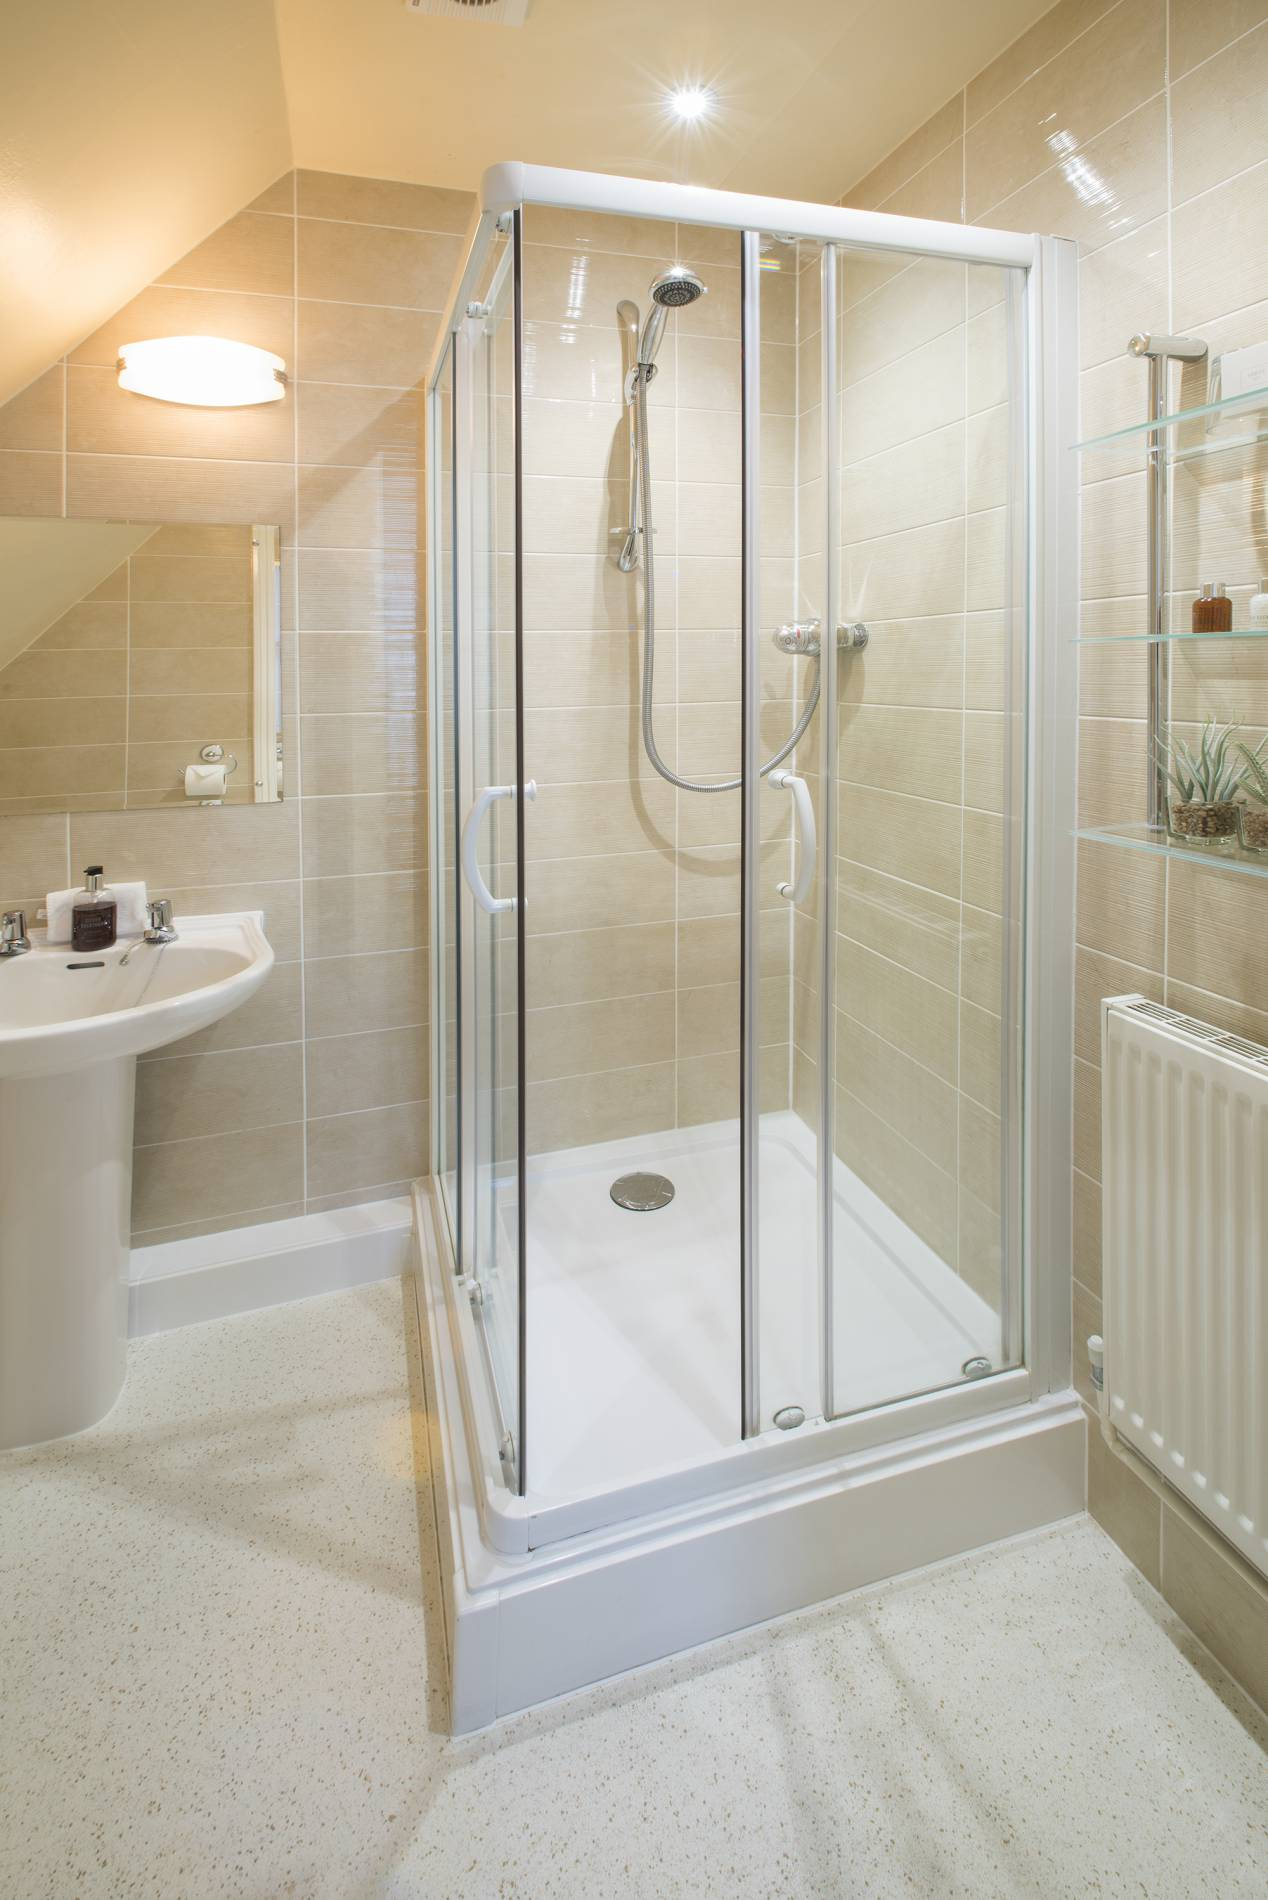 Yorke Lodge Bed and Breakfast Canterbury Kent shower